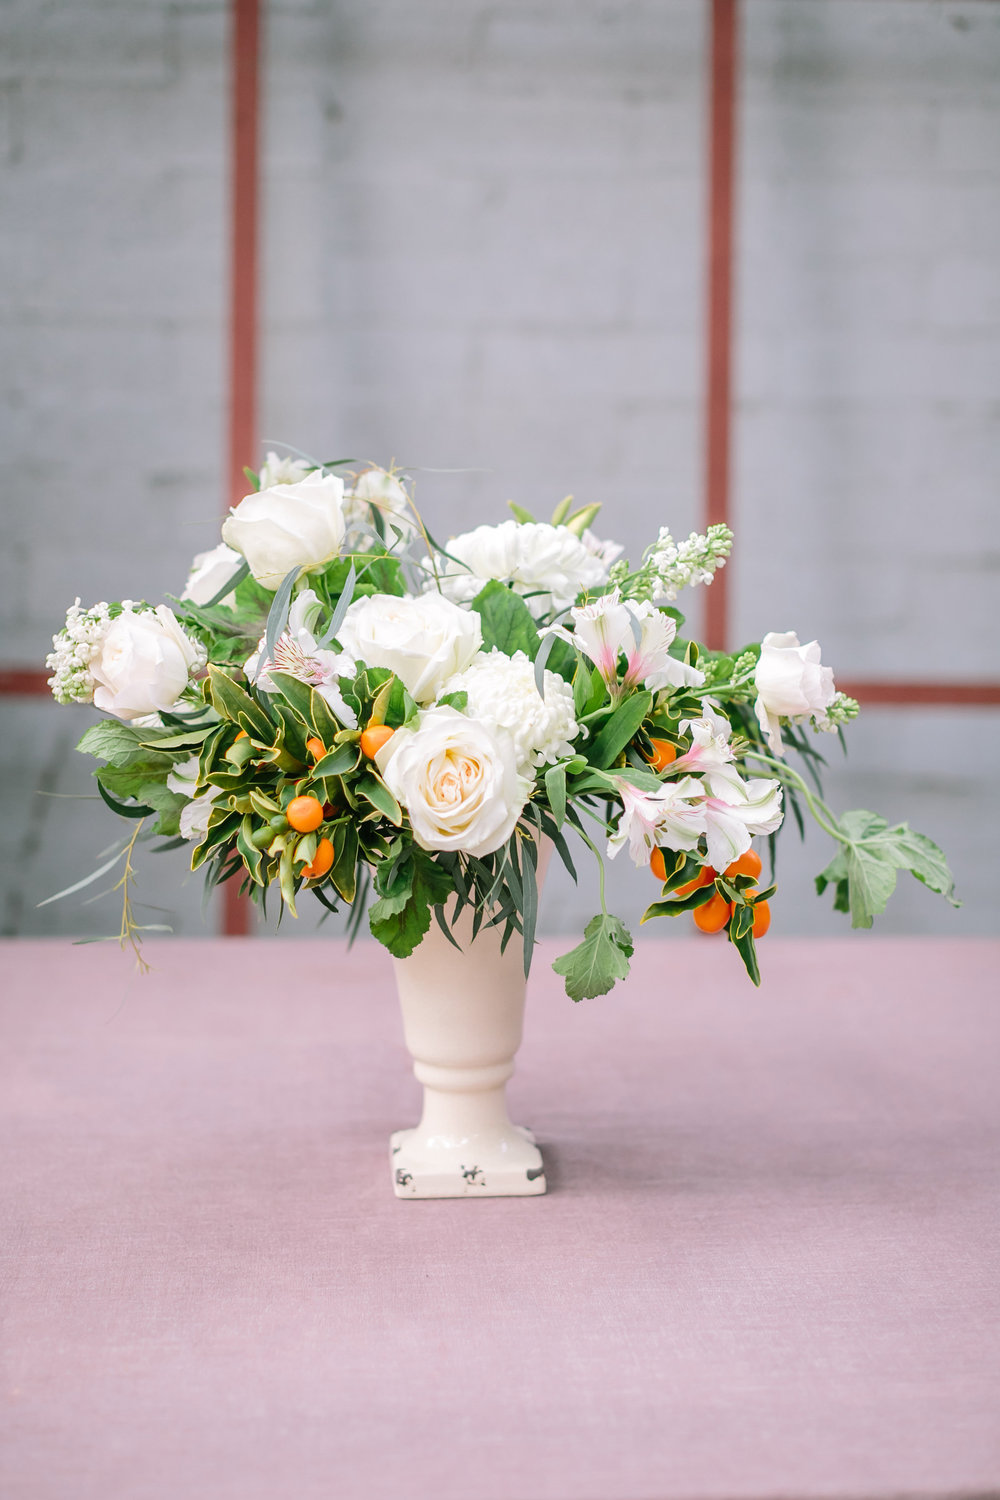 Easy DIY floral centerpiece with garden roses & kumquats from boxwoodavenue.com | Indu Huynh Photography